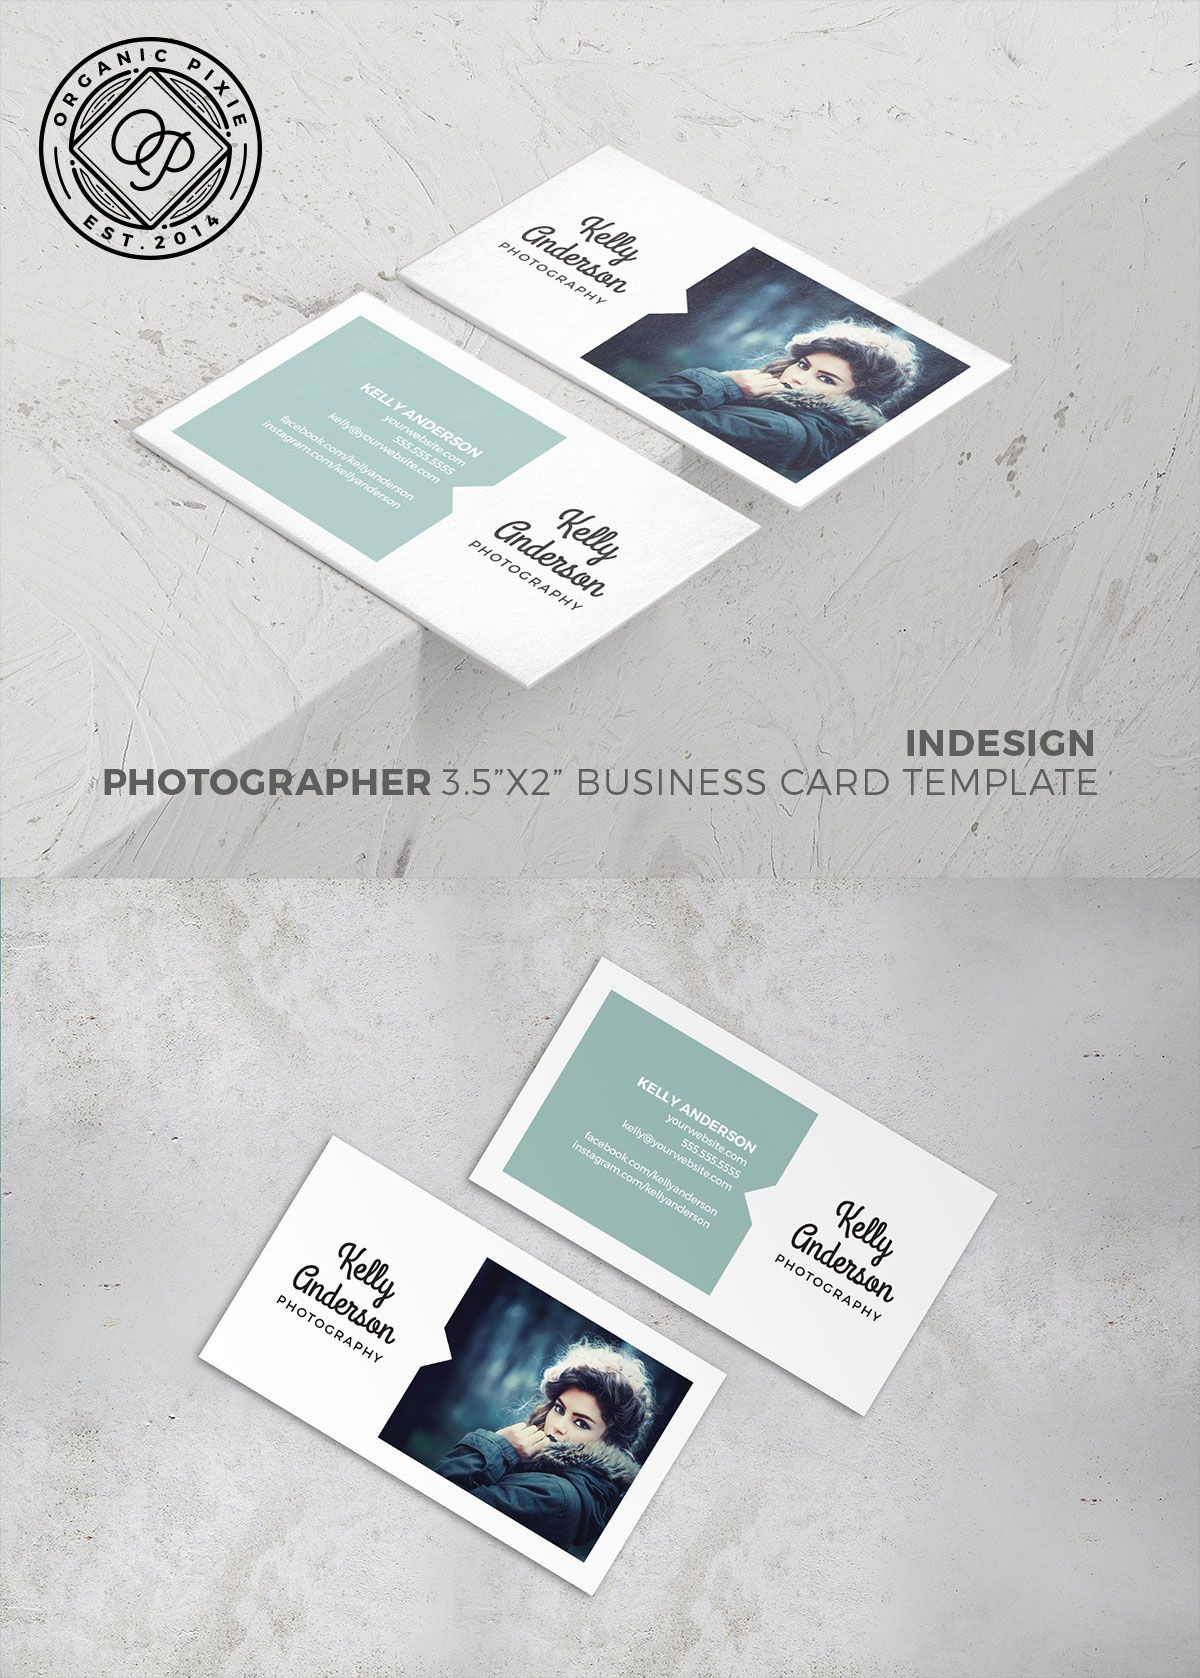 This is an easy to use turn key business card design template in